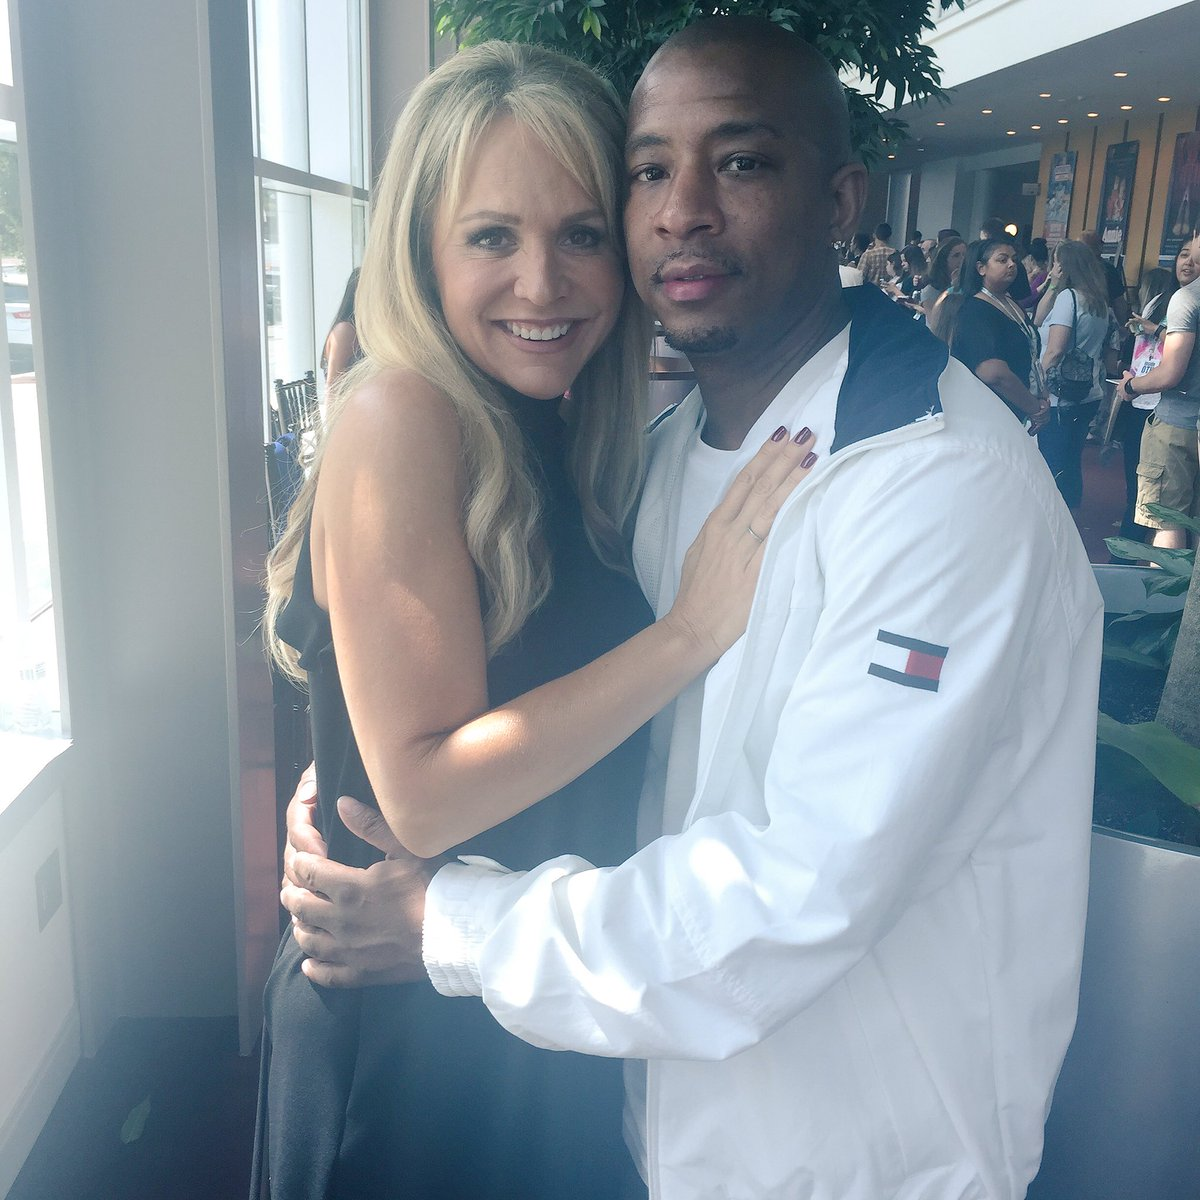 BACK TOGETHER!!!@Inside_OTH @antwon_tanner https://t.co/K8PEVydWUe